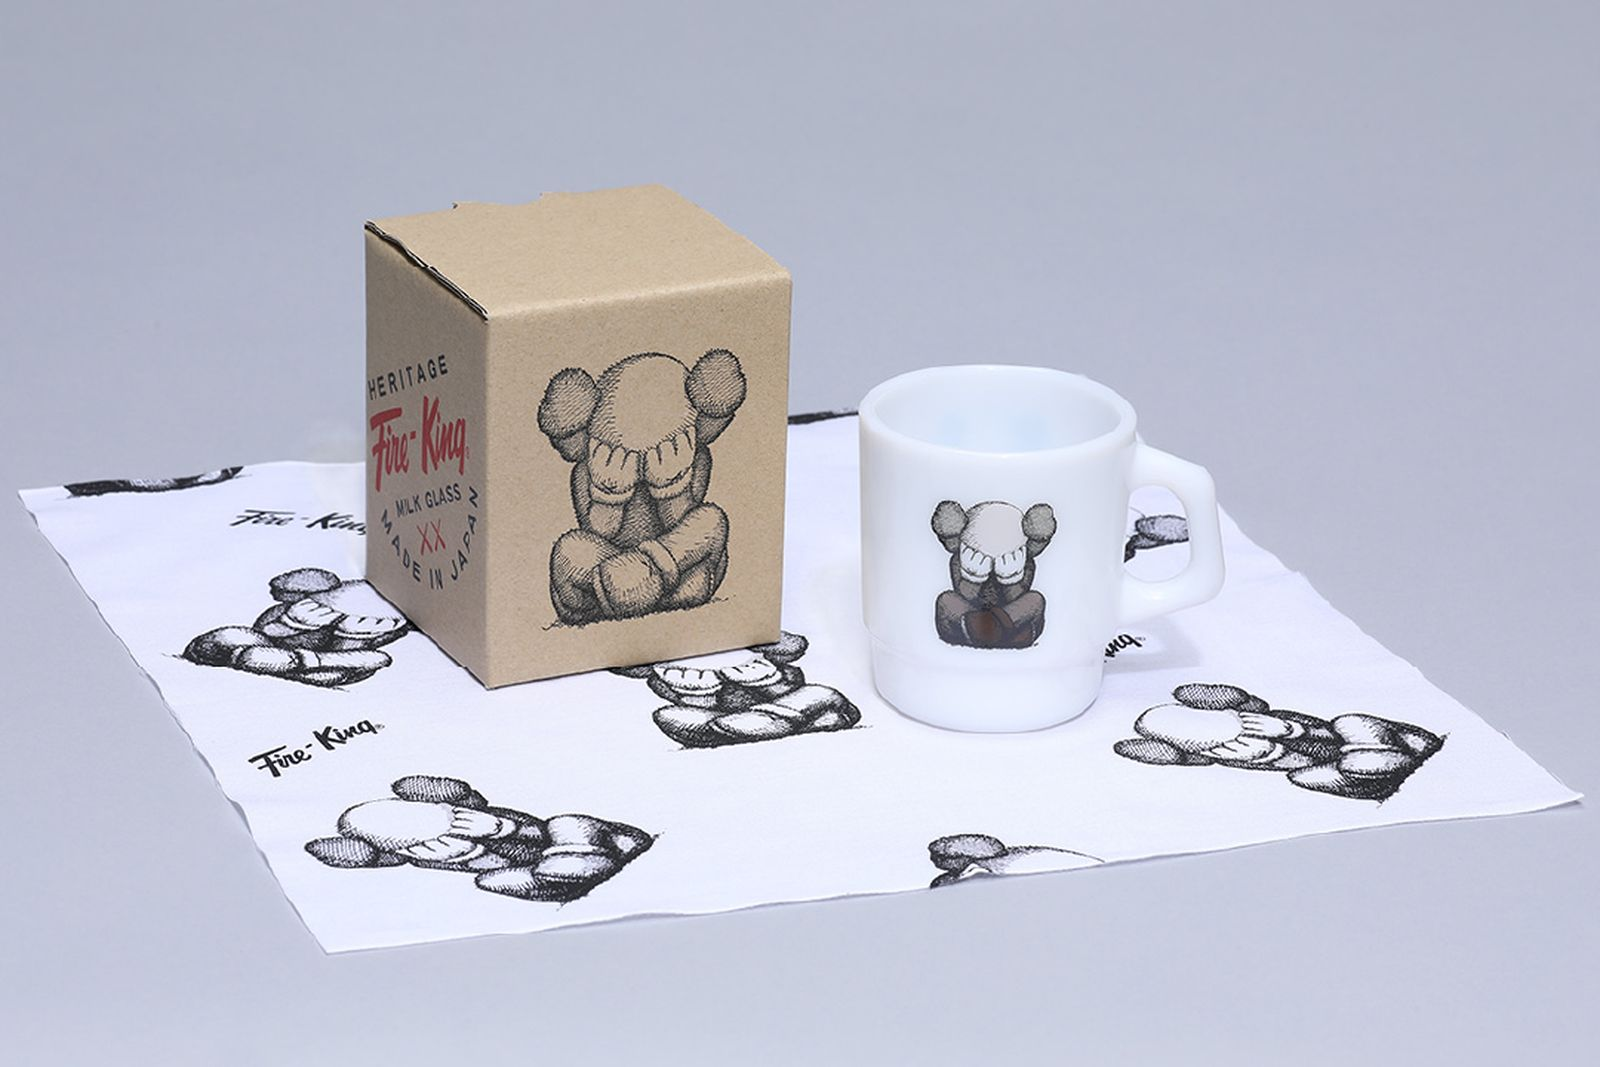 kaws tokyo first fire king mup cup bowl companion buy price